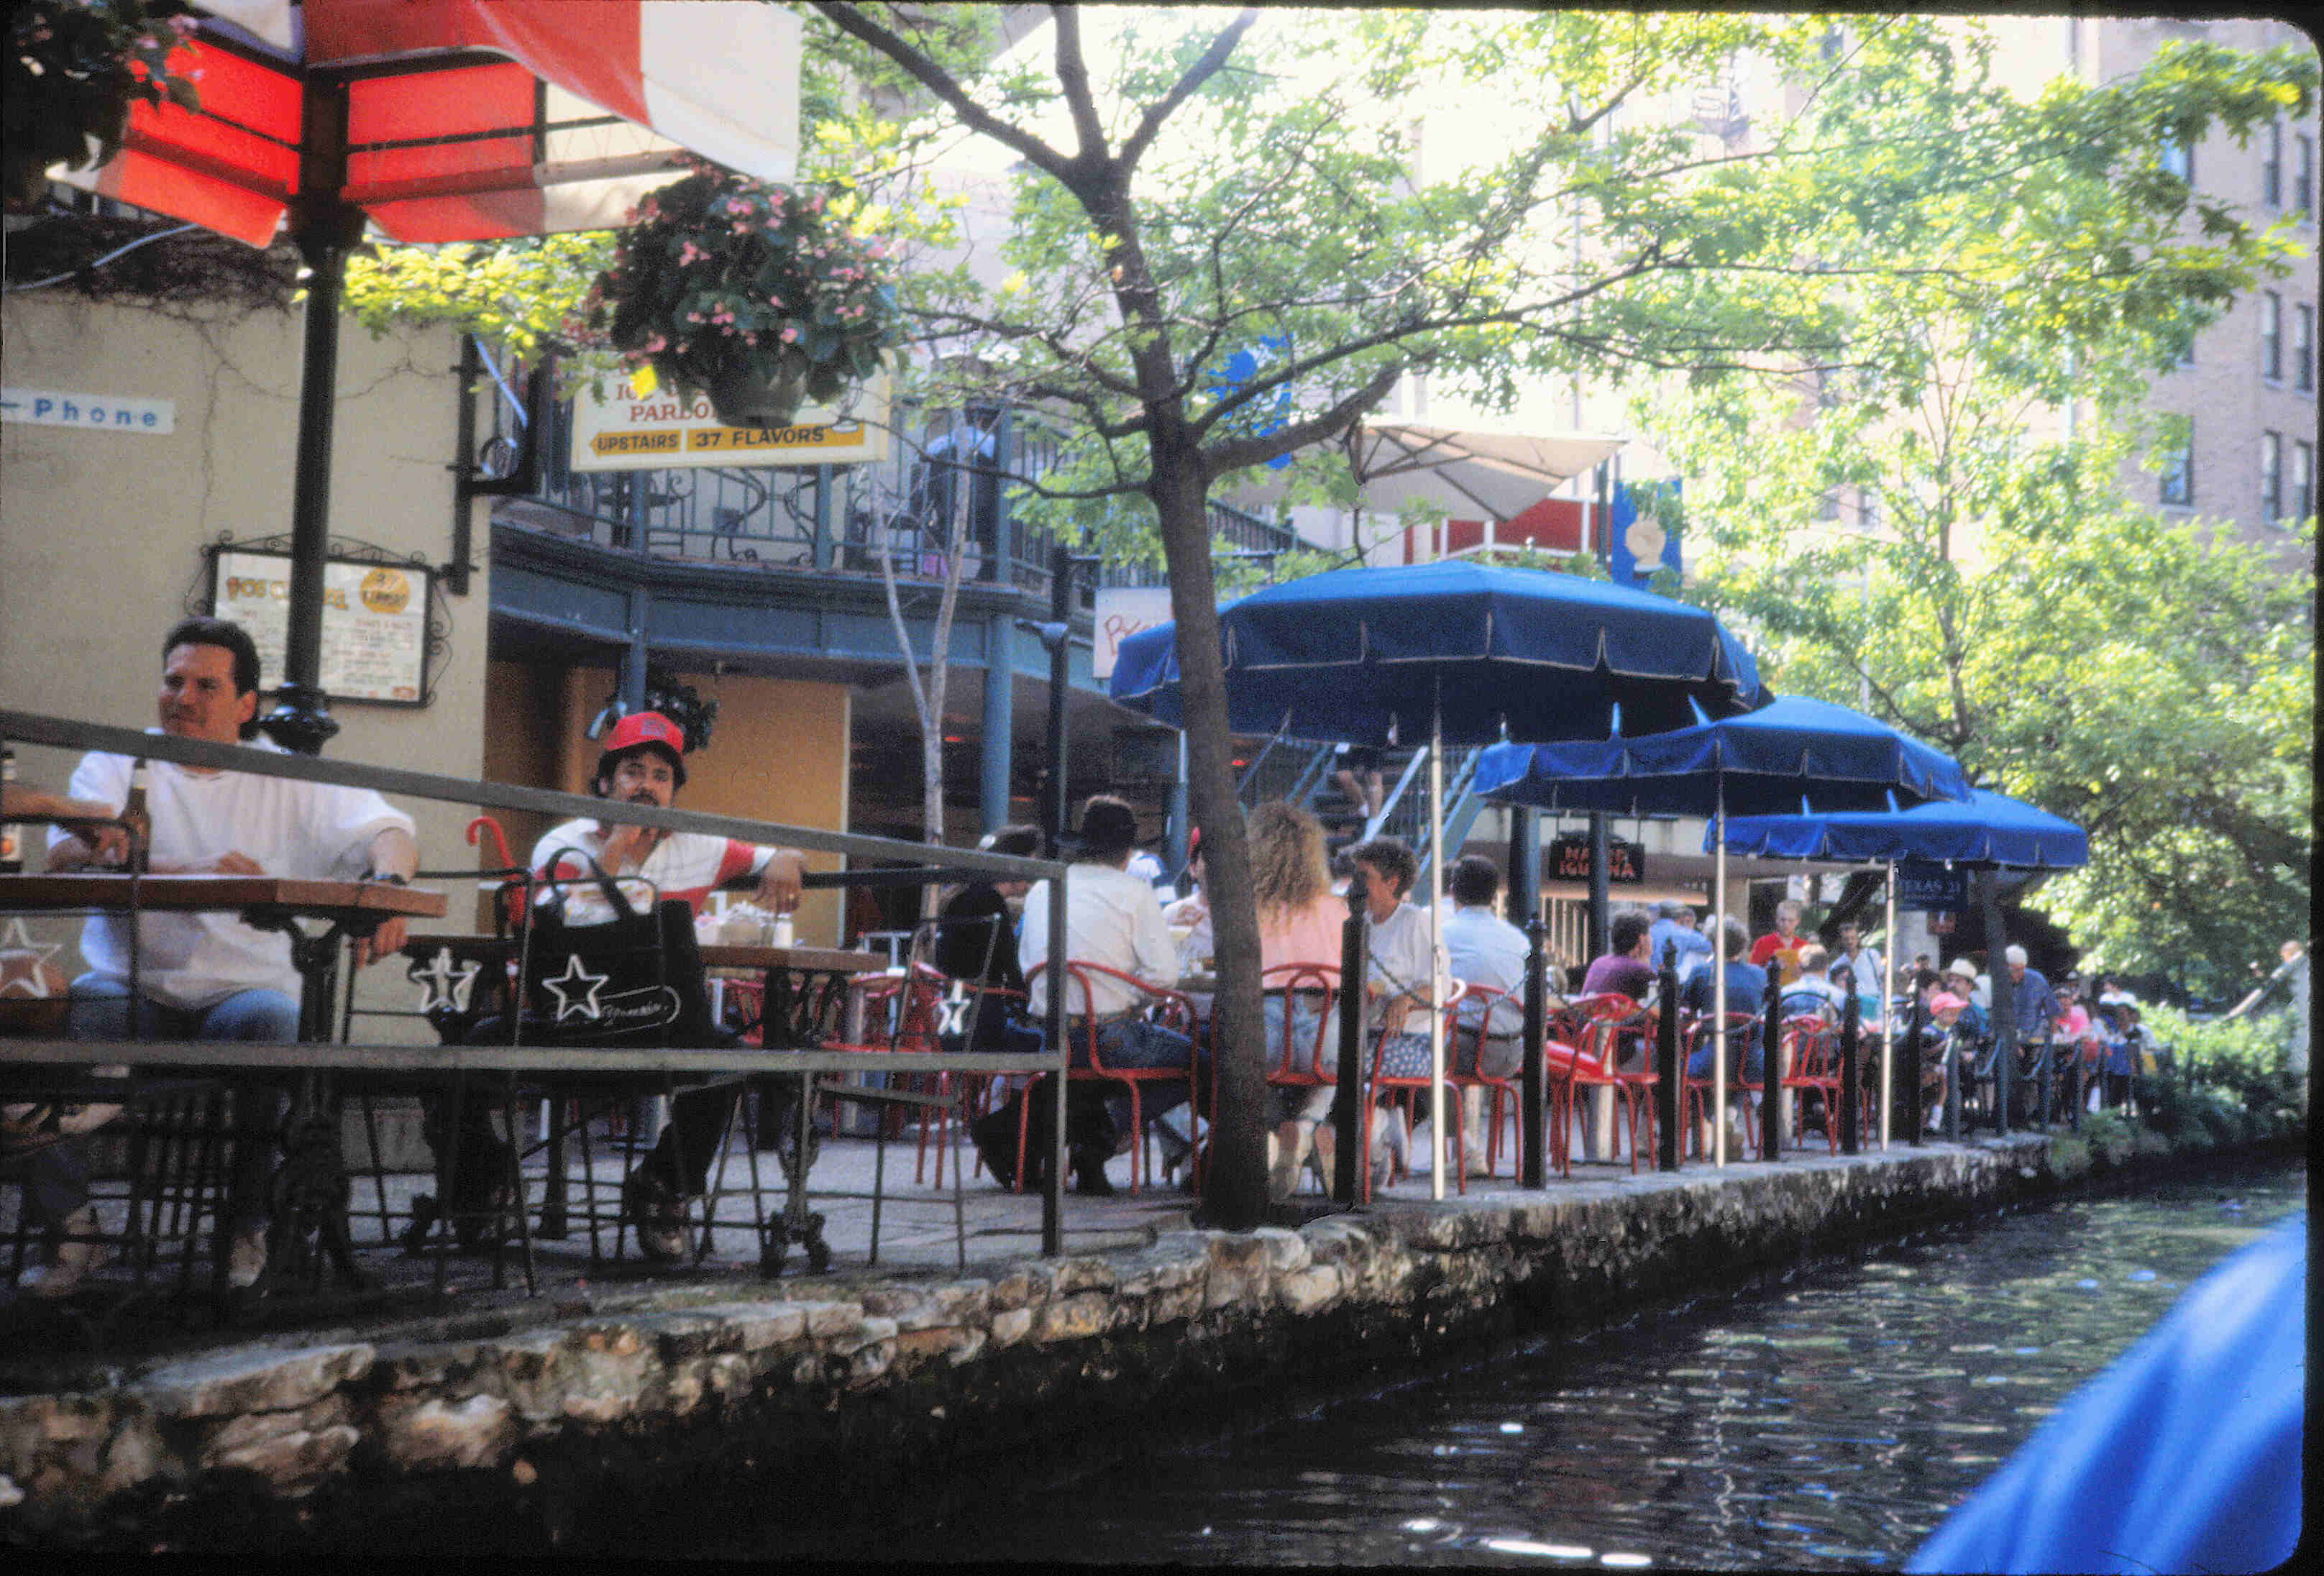 Trolleys San Antonio San Antonio Riverwalk